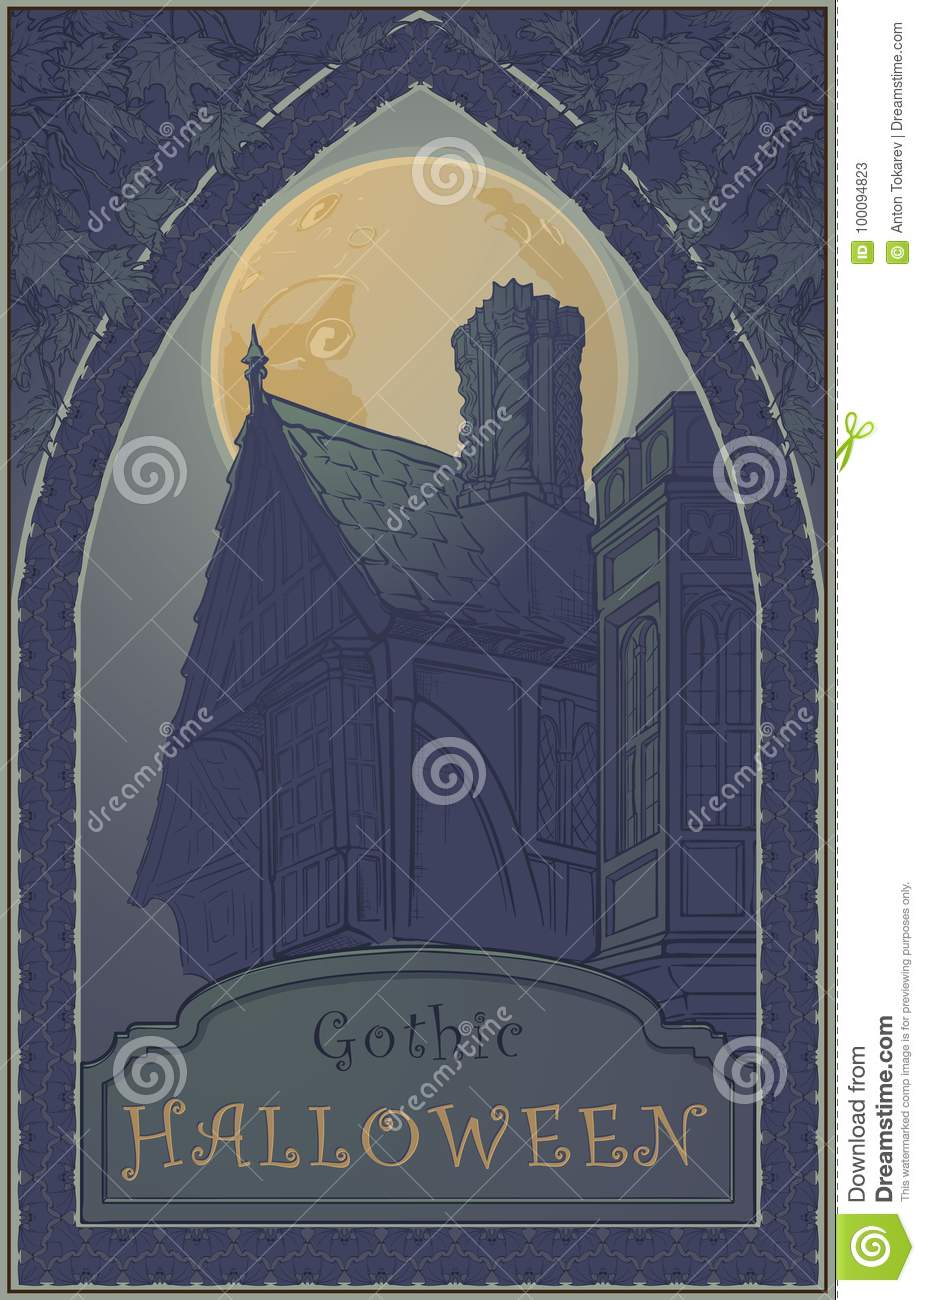 Typical Ghost Story House Halloween Conceptual Art Halloween